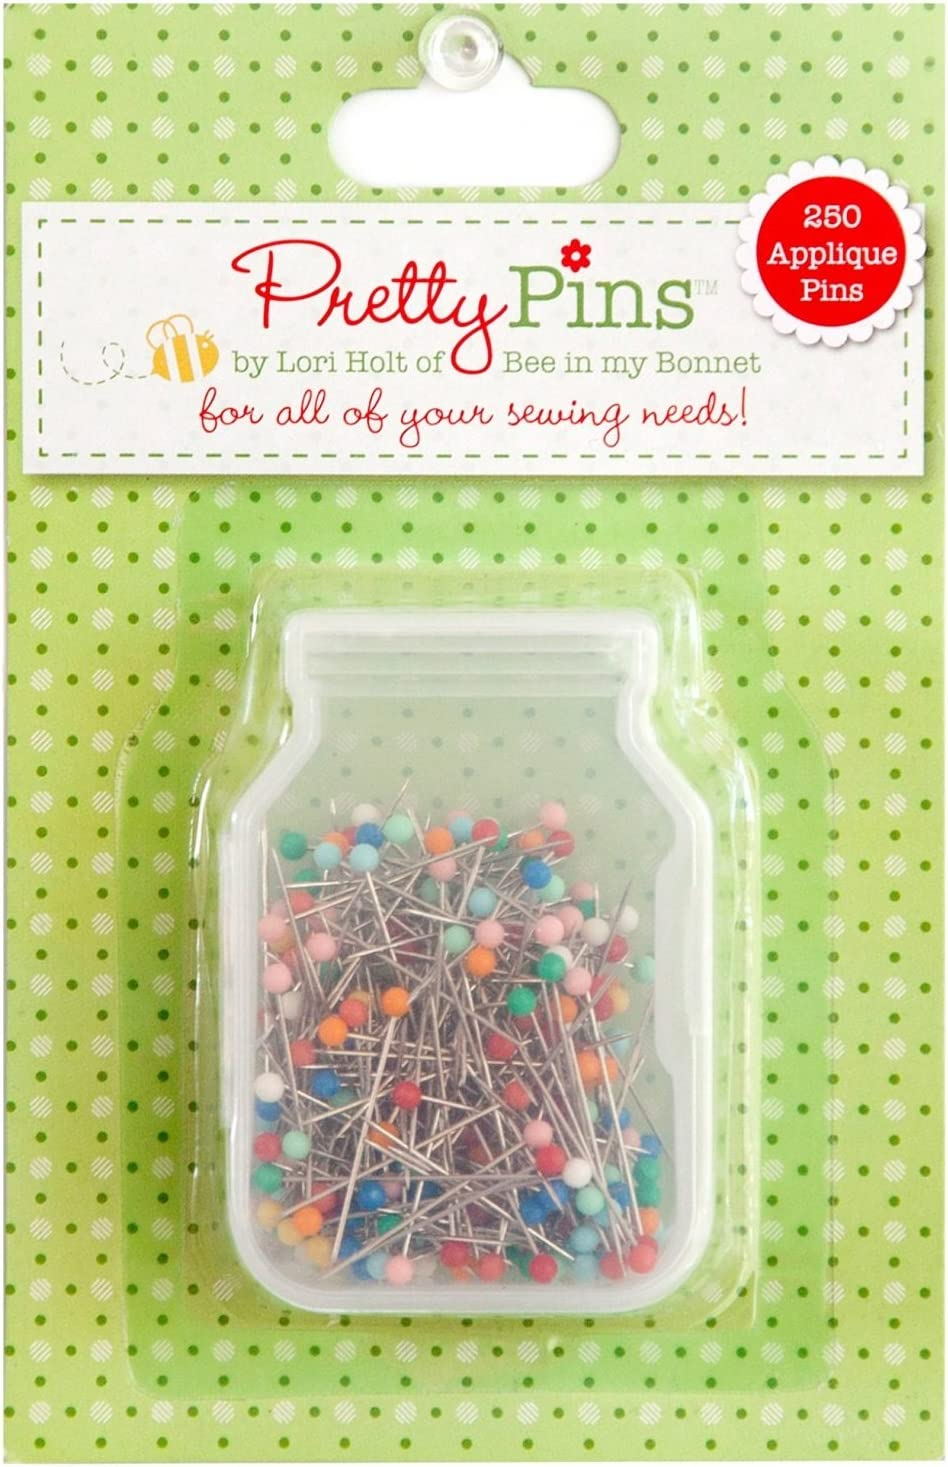 Pretty Pins by Lori Holt